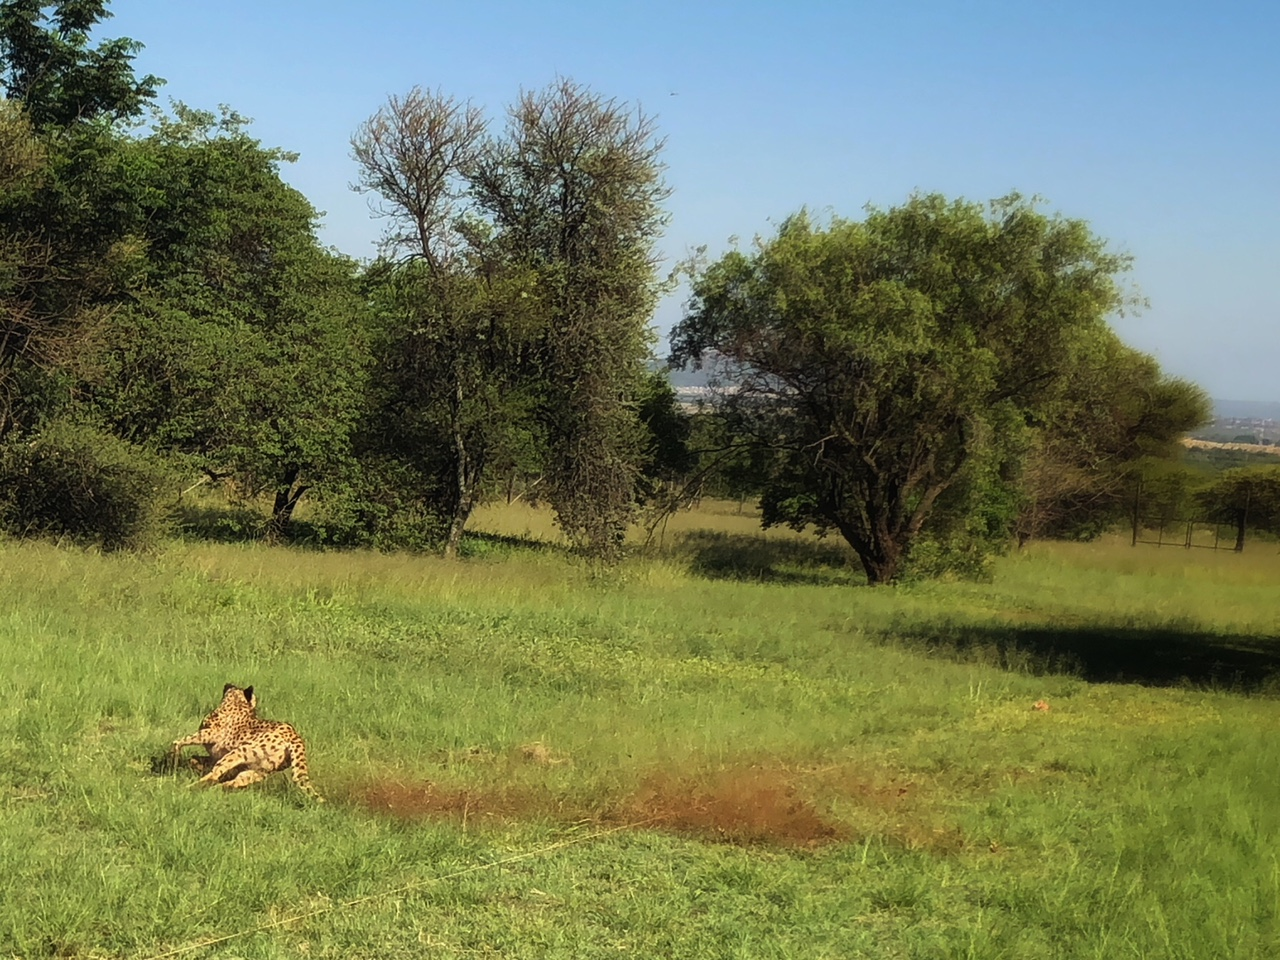 Cheetah sprinting at the De Wildt Cheetah Centre with Amanzi Guest House guests